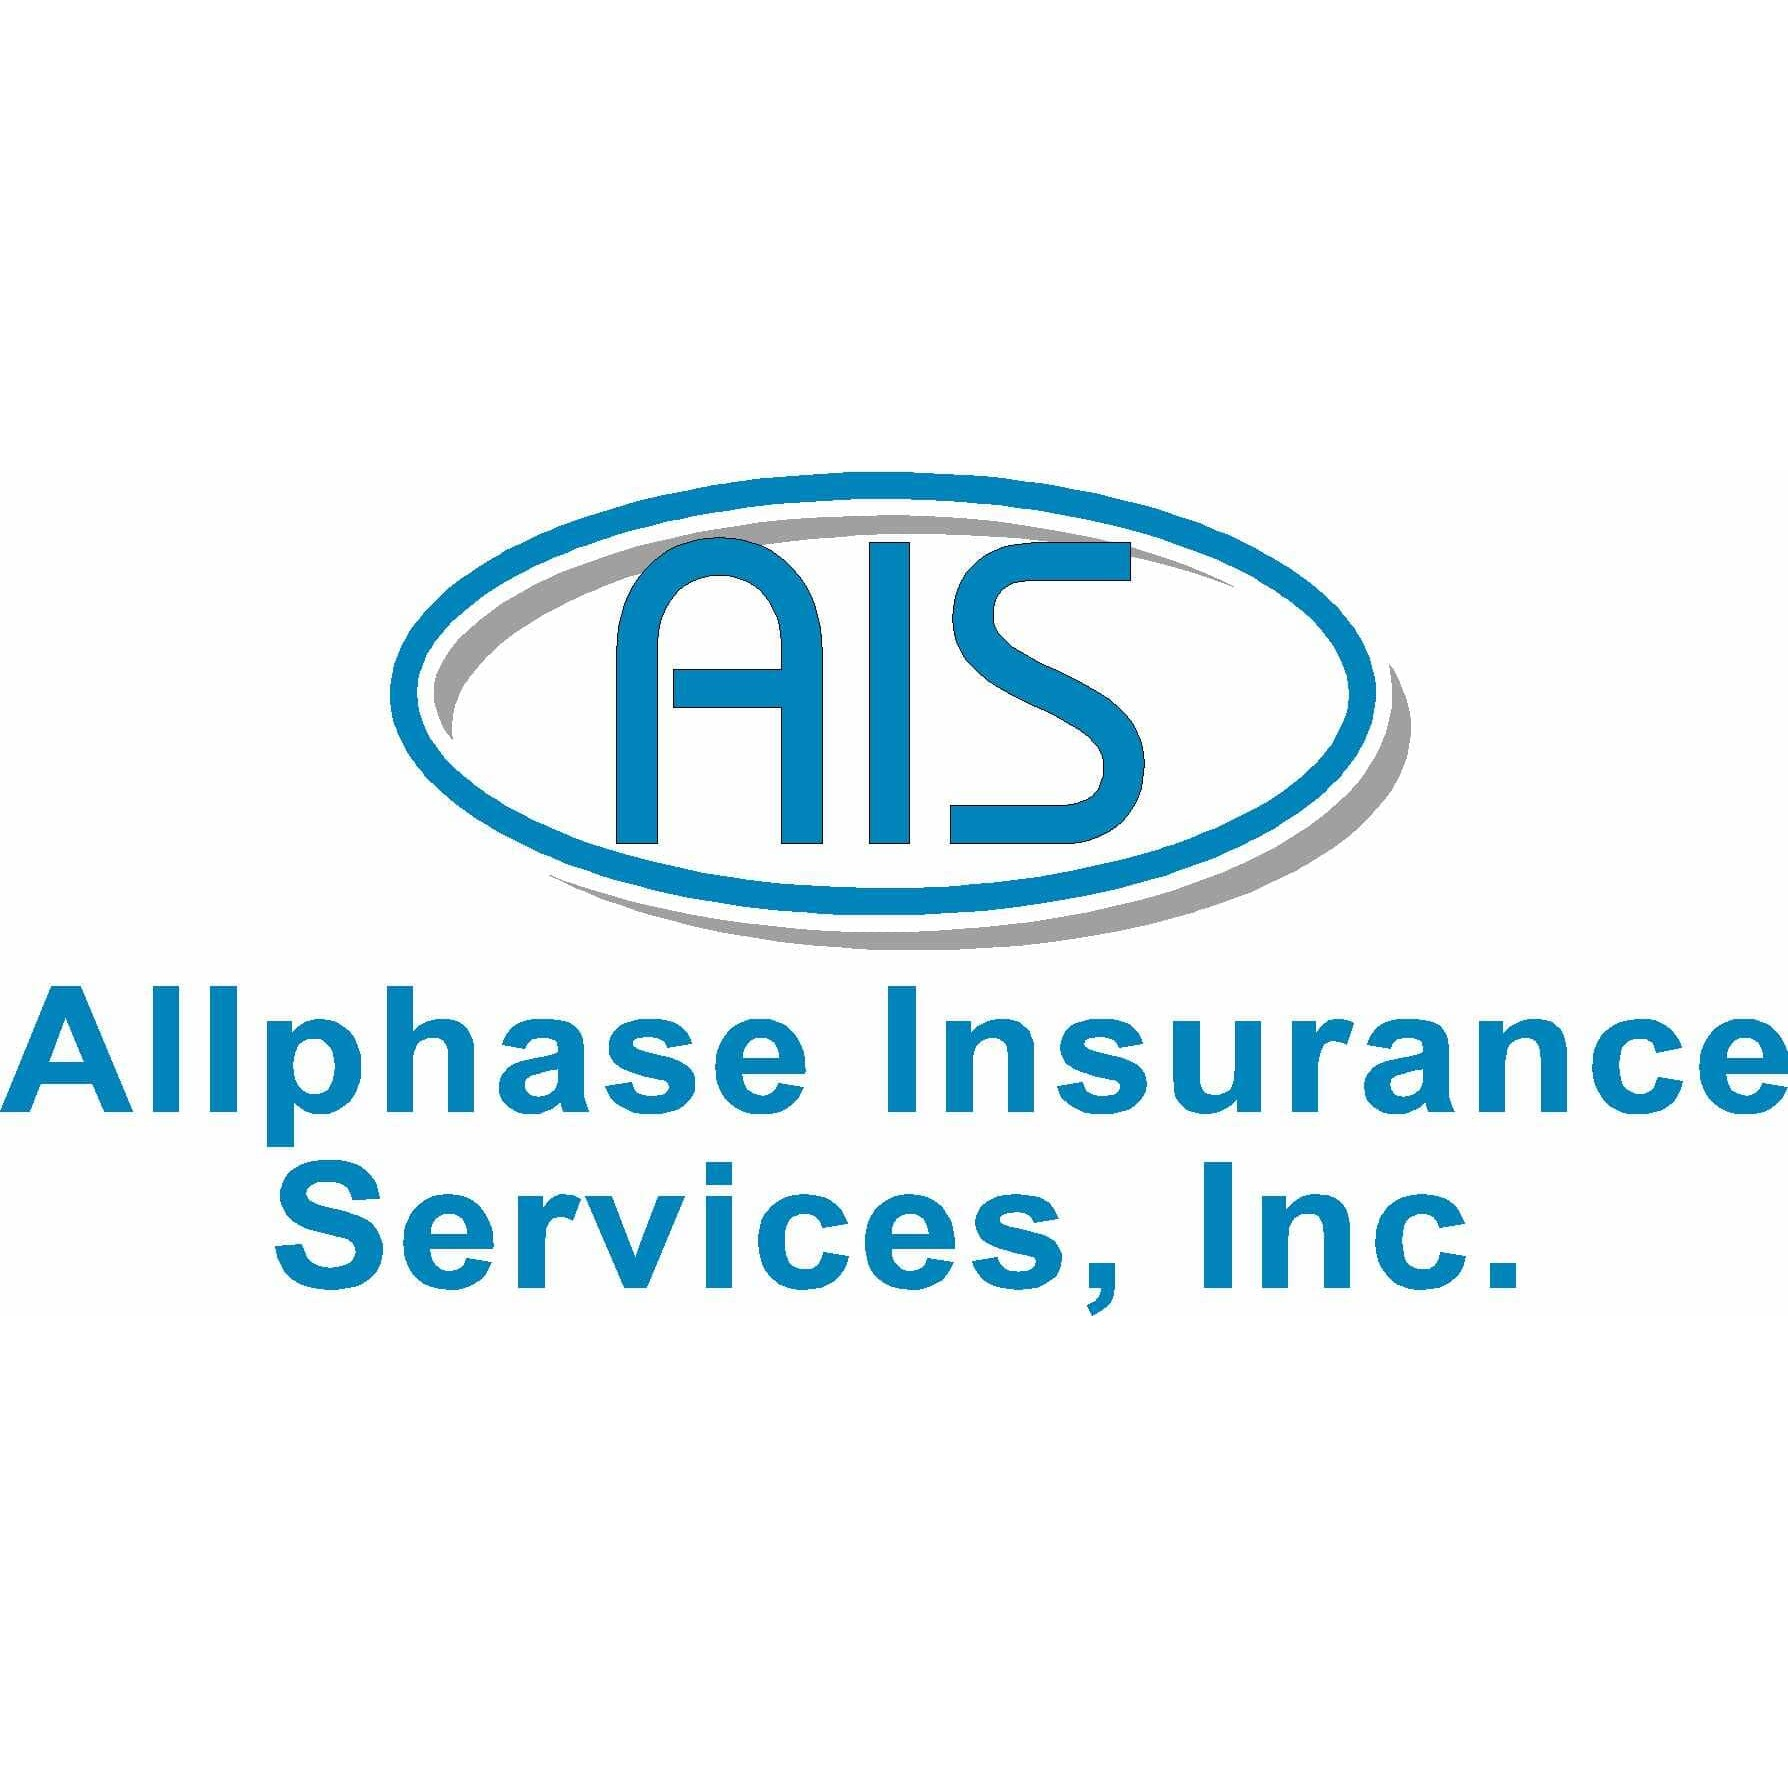 Allphase Insurance Services Inc.